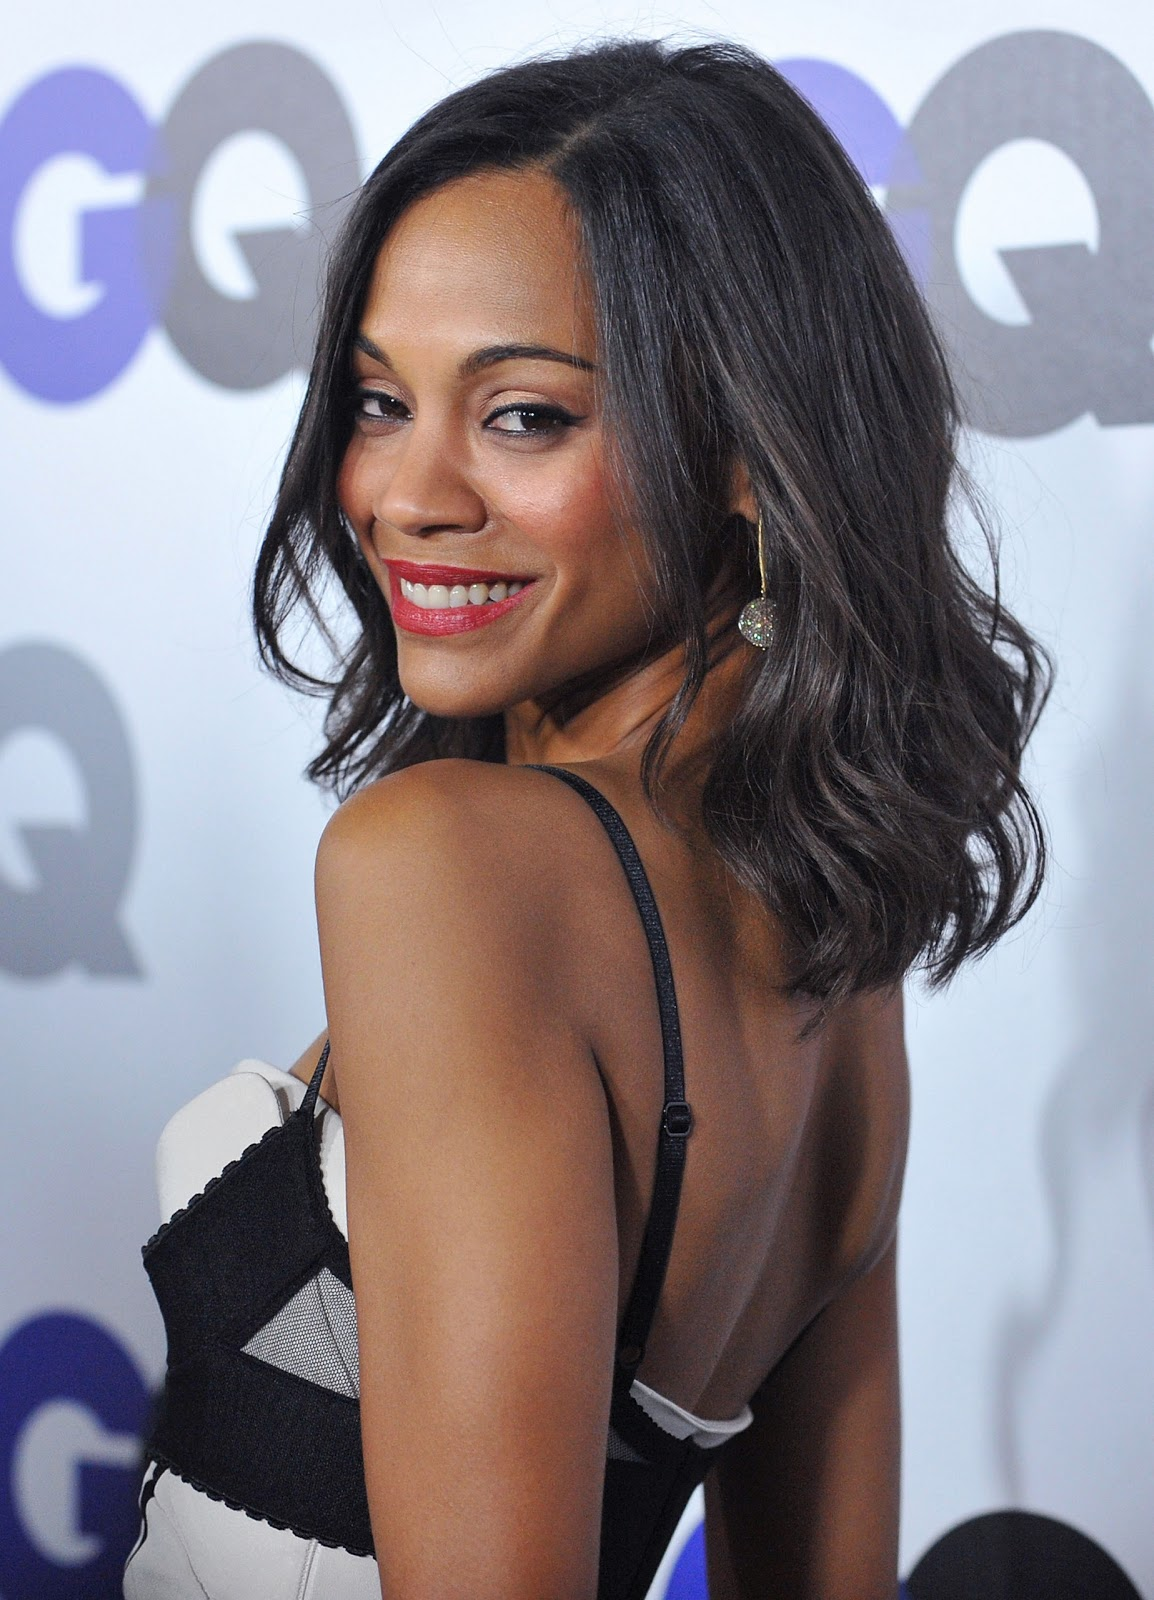 http://2.bp.blogspot.com/-8etvYdCv_C8/TvzXCzhtI9I/AAAAAAAAFeM/1g4B6n3wSWs/s1600/Zoe-Saldana-GQ-Men-of-the-Year-Party-HQ-zoe-saldana-9260644-1847-2560.jpg